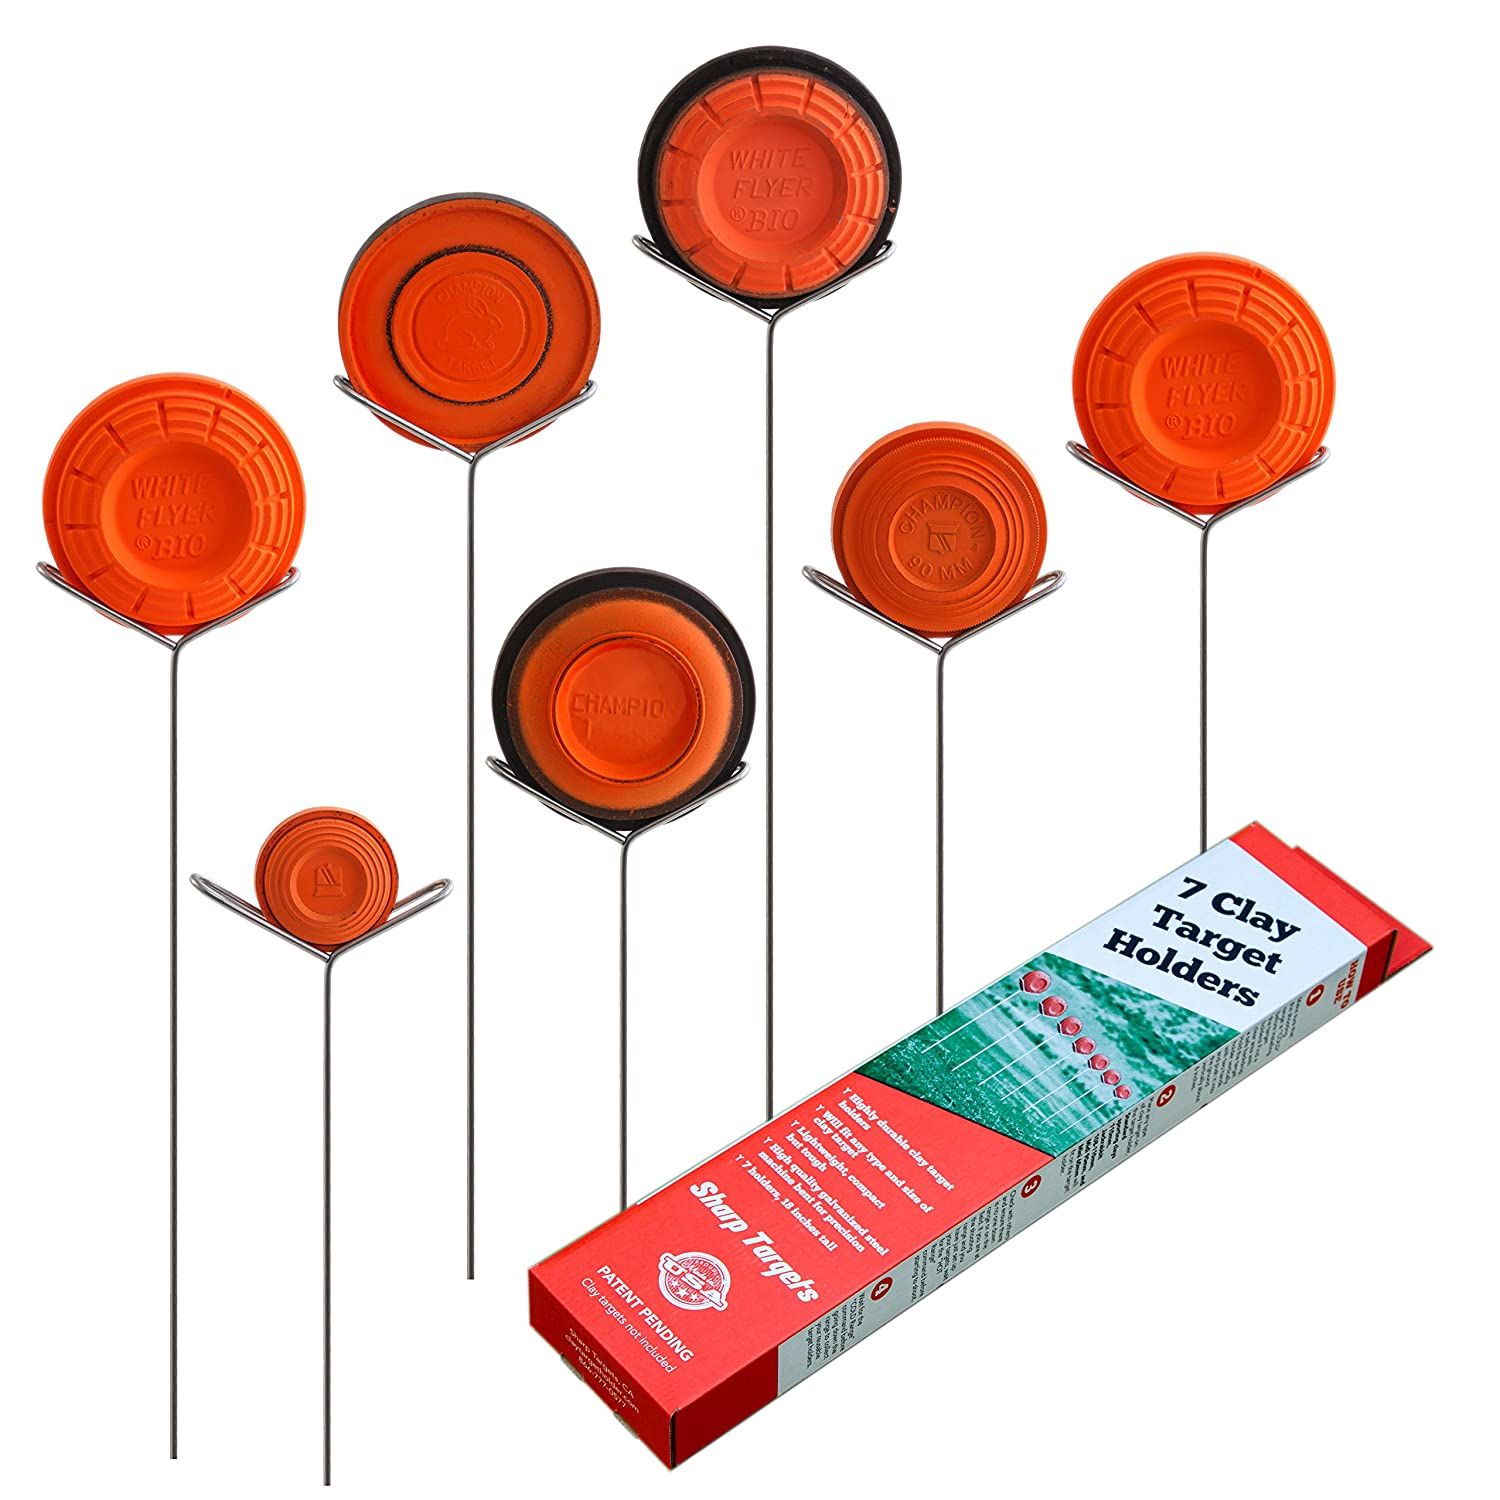 clay pigeon tar holders pack of 7 will fit any